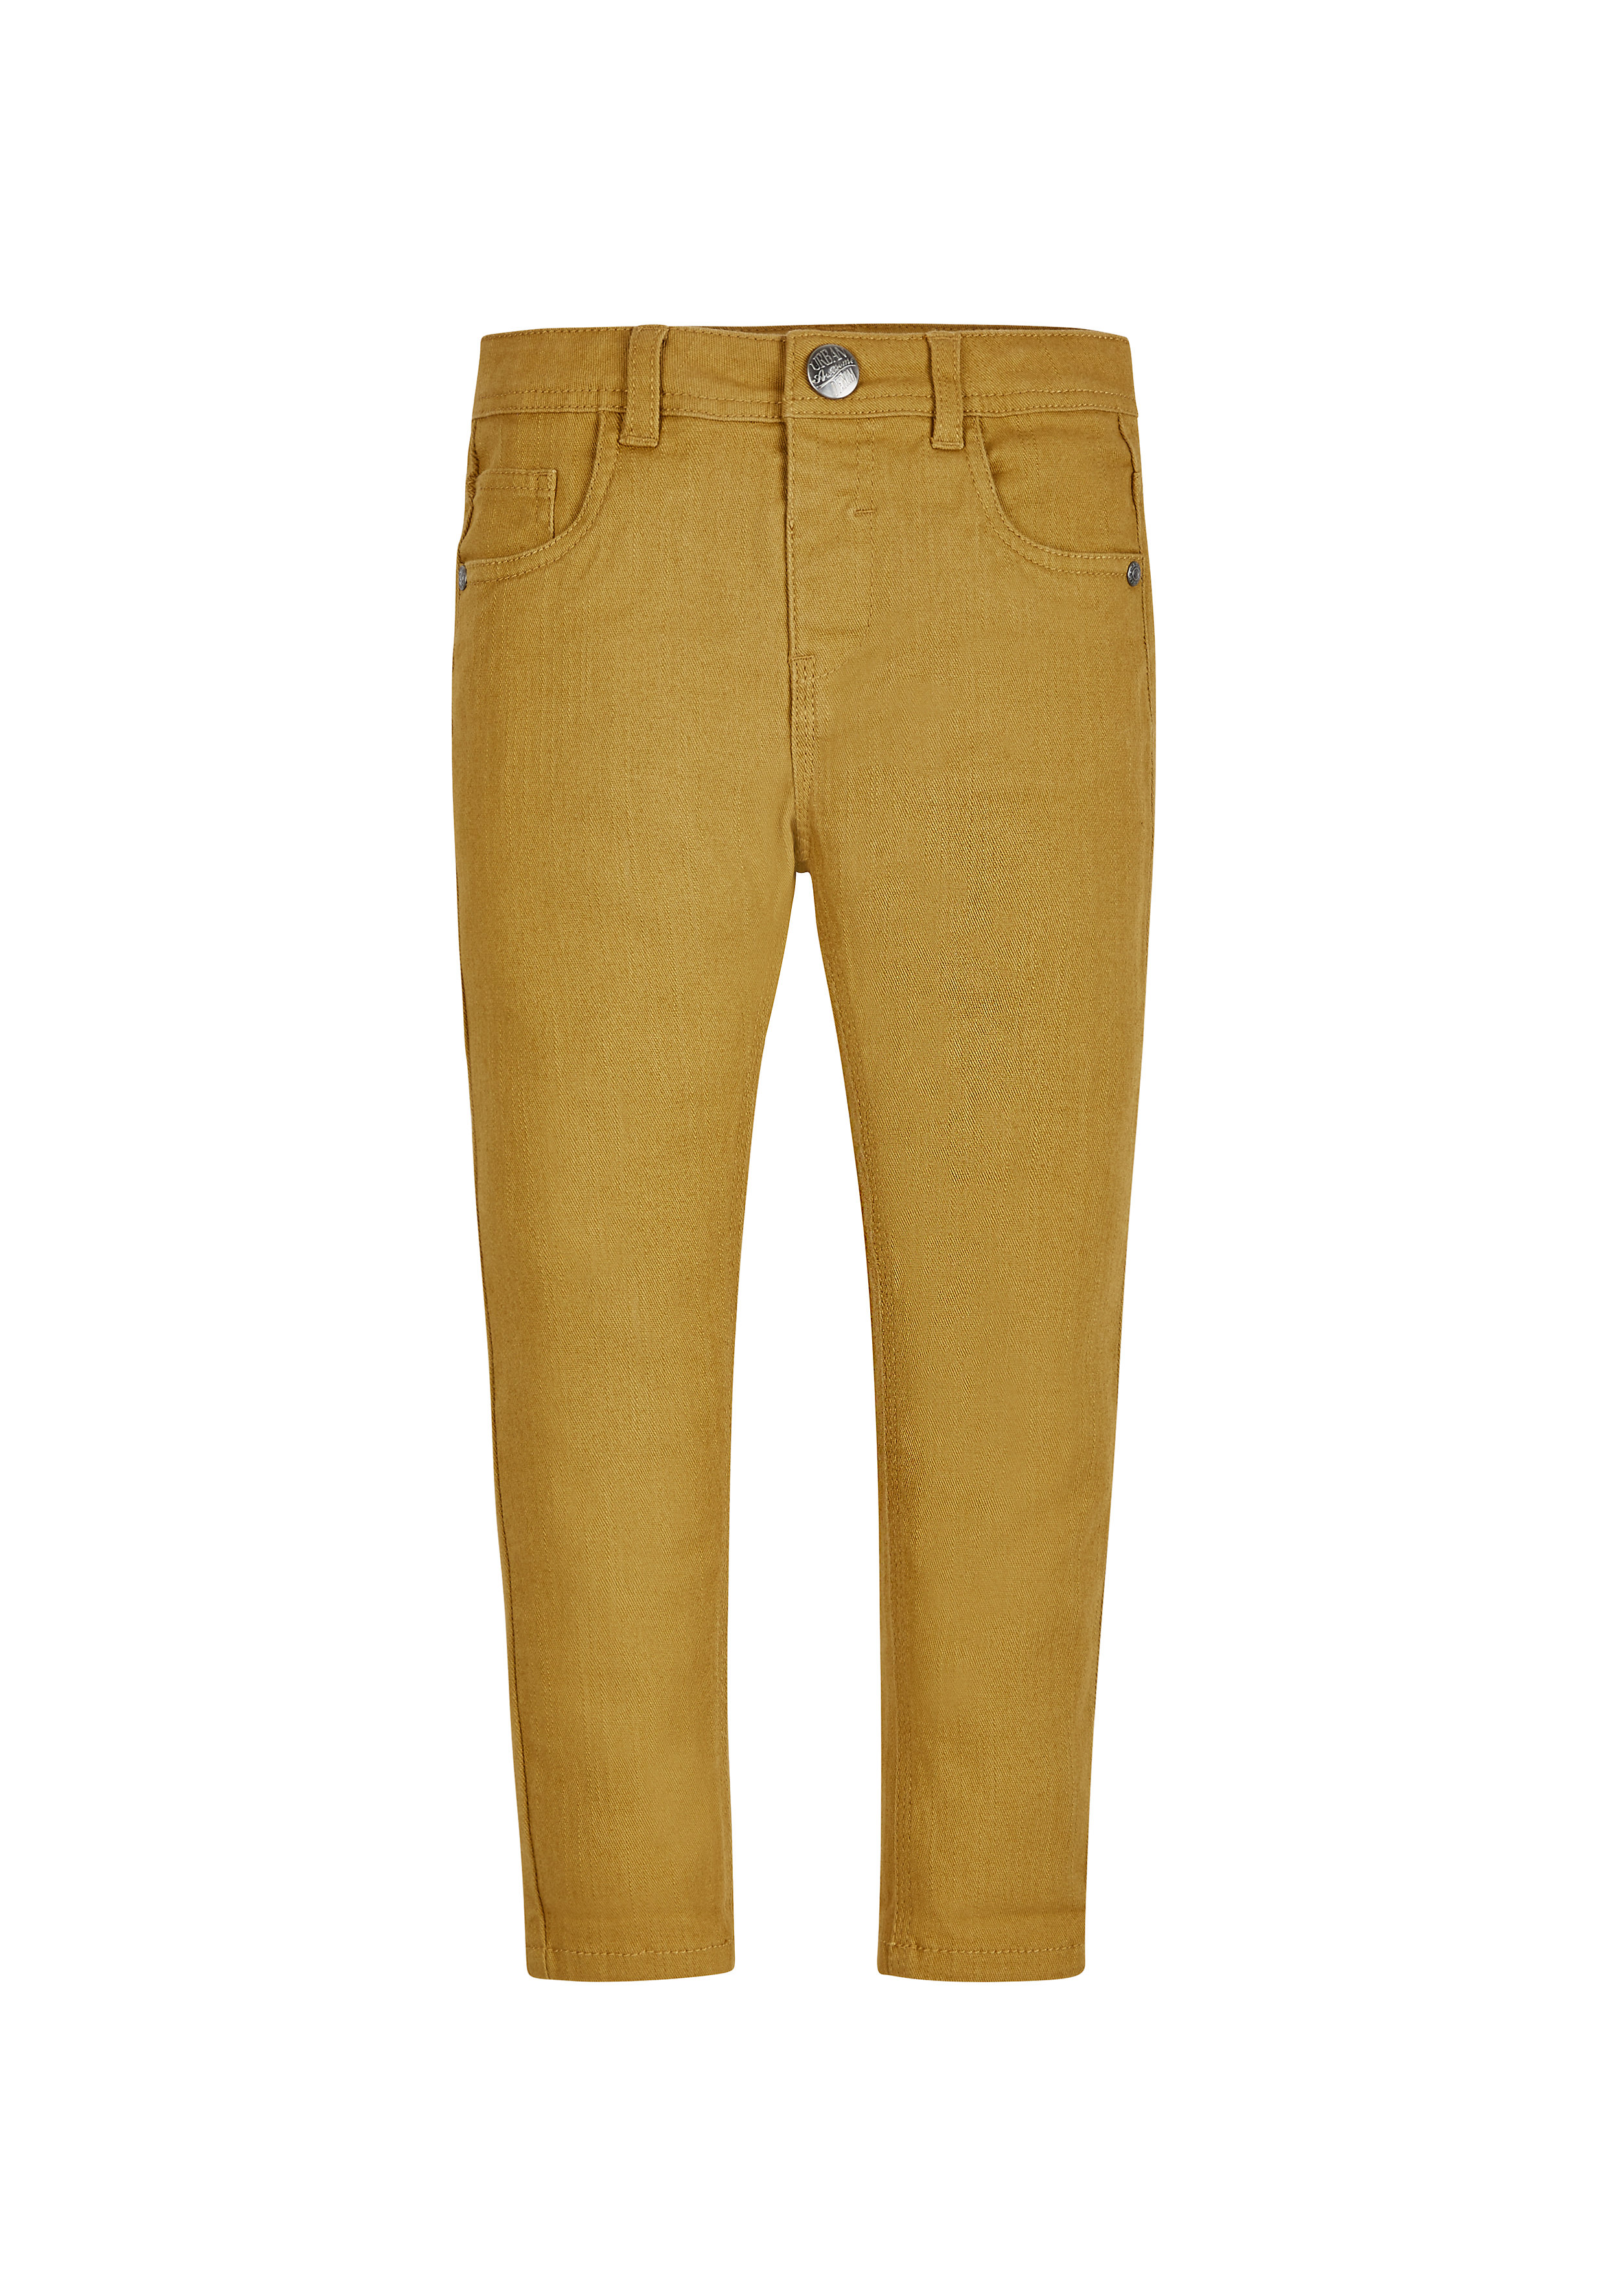 Mothercare | Boys Twill Trousers - Yellow